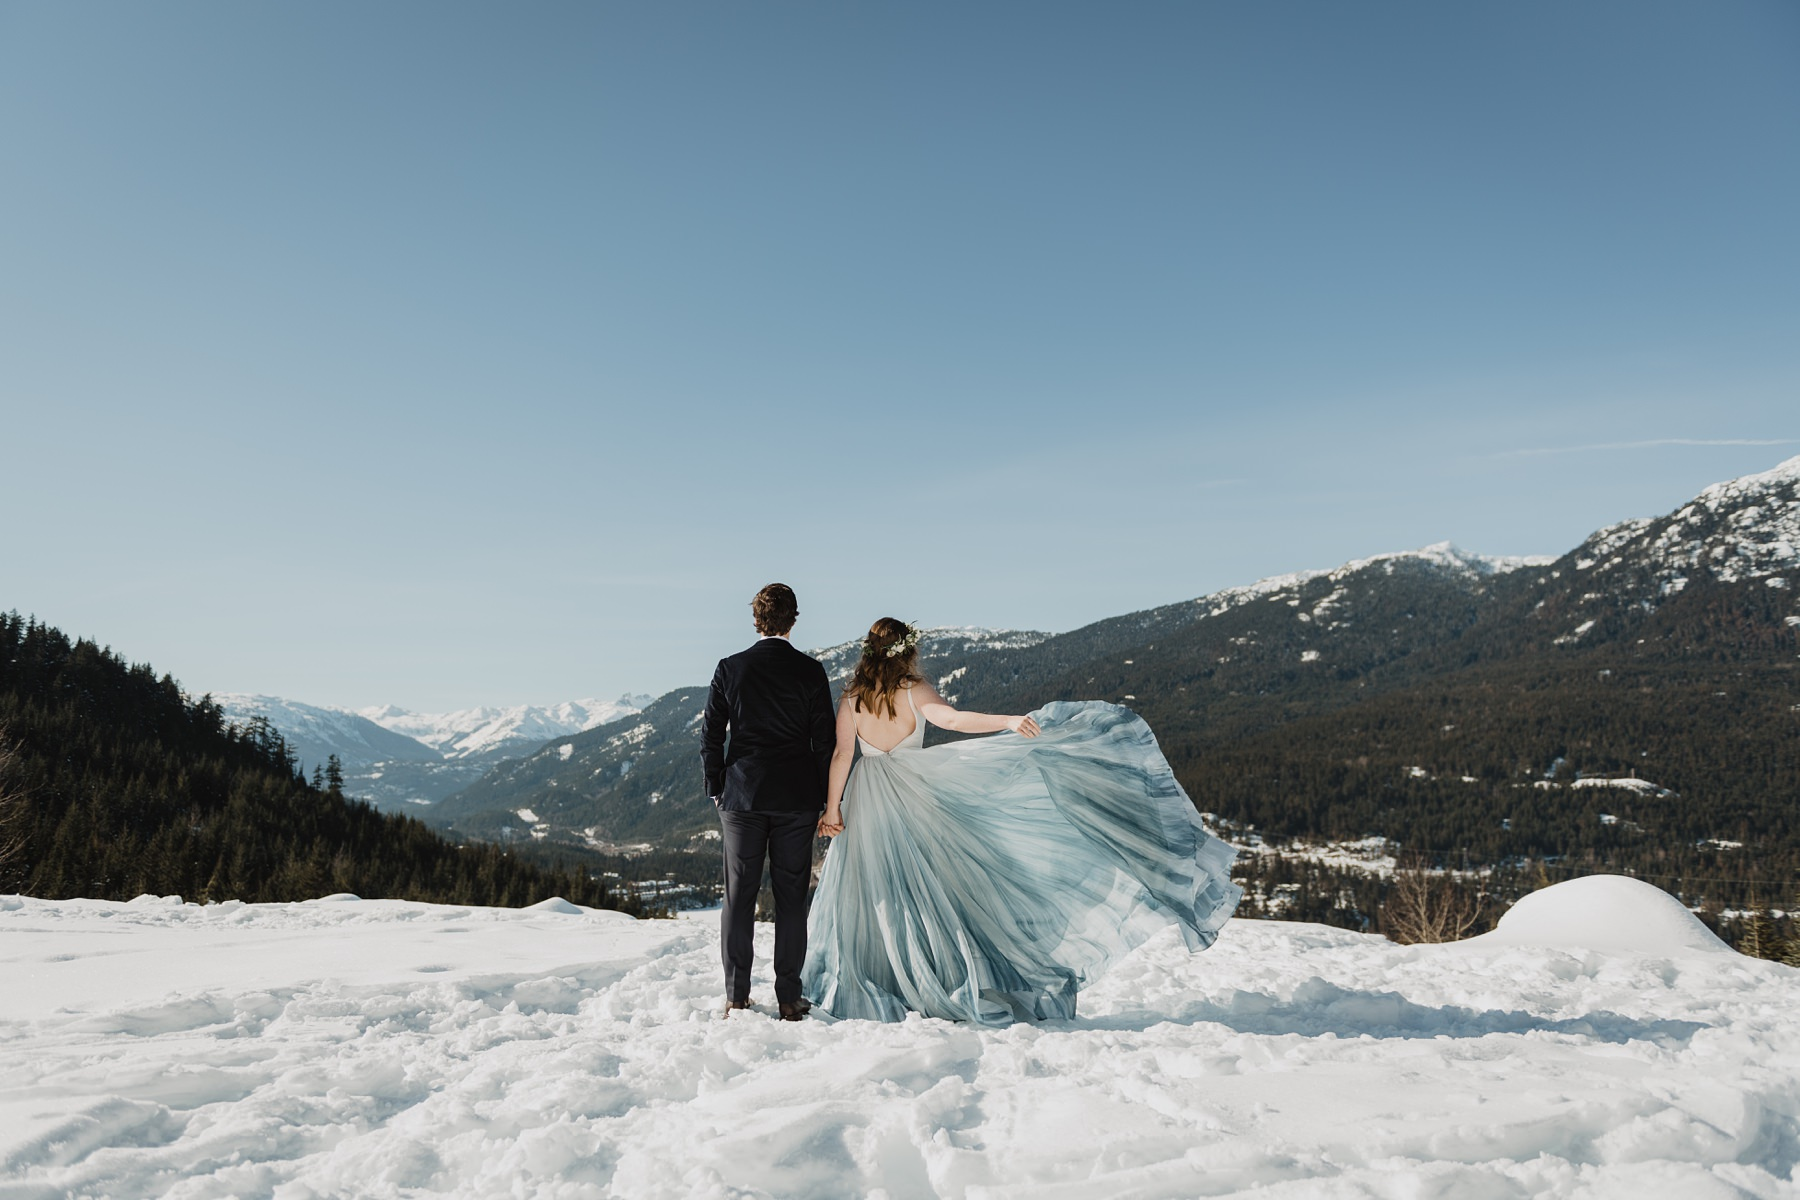 colourful wedding dress in the snow in mountains